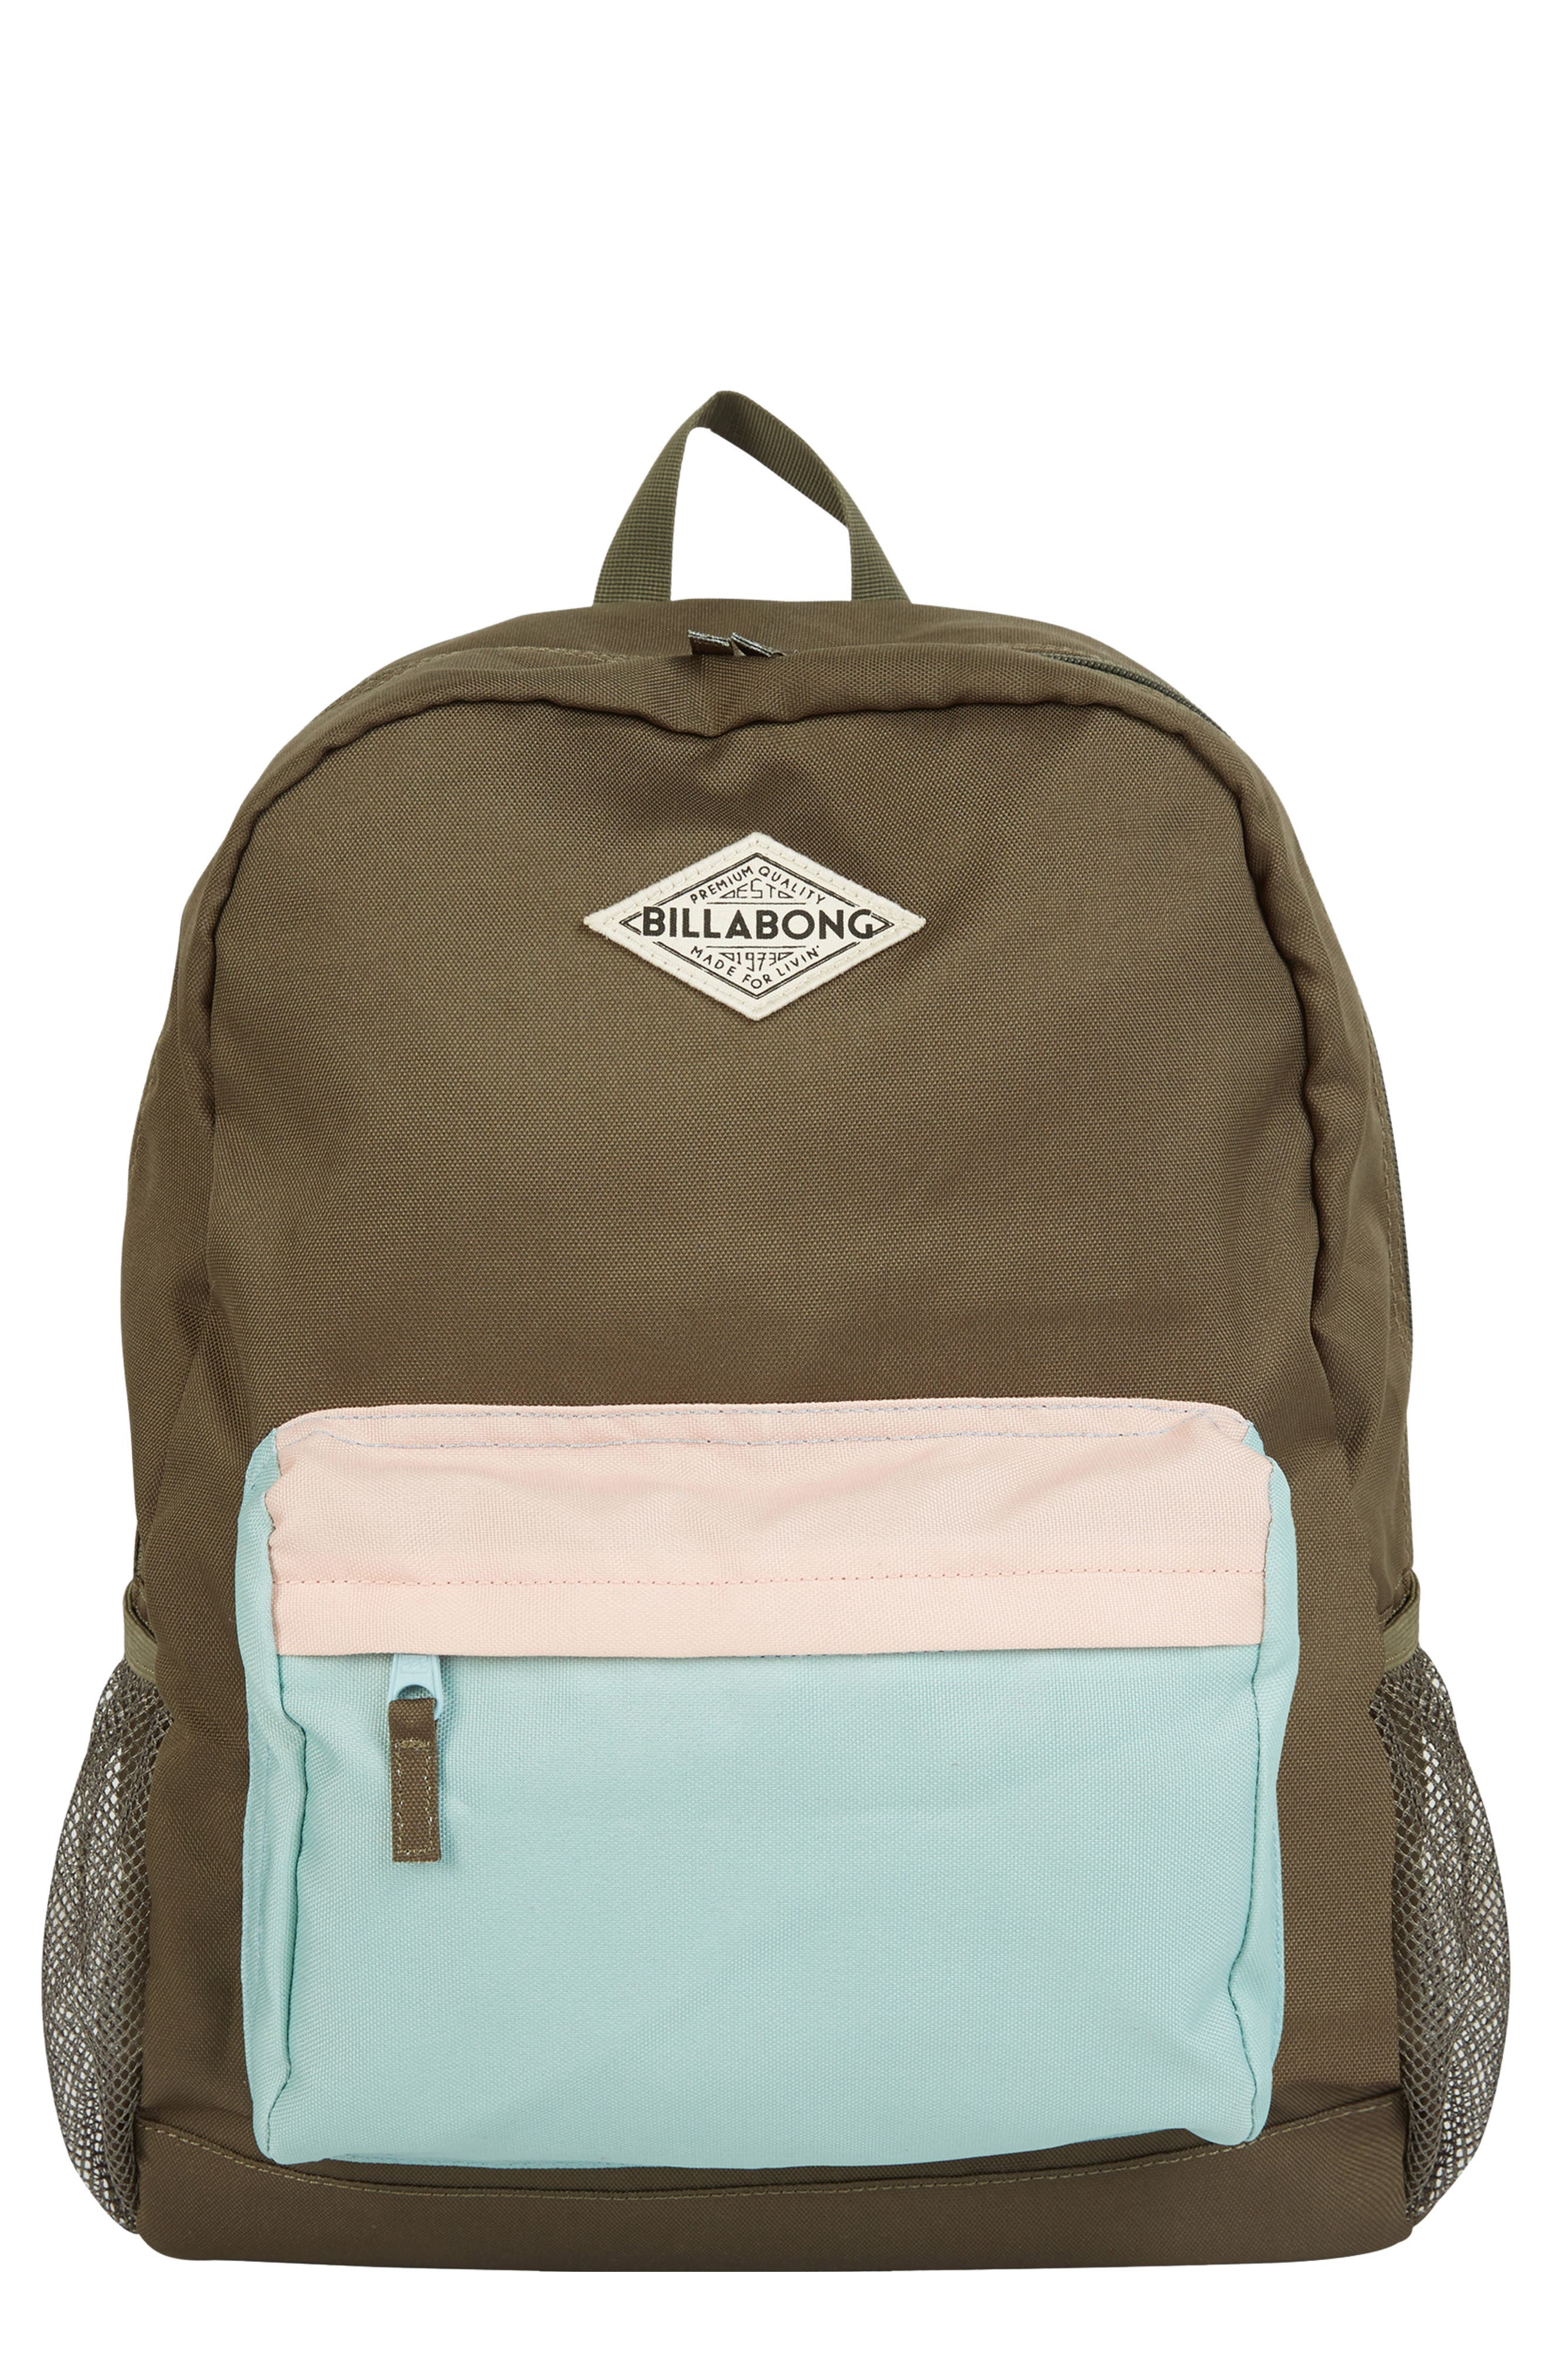 School's Out Backpack,                             Main thumbnail 1, color,                             300